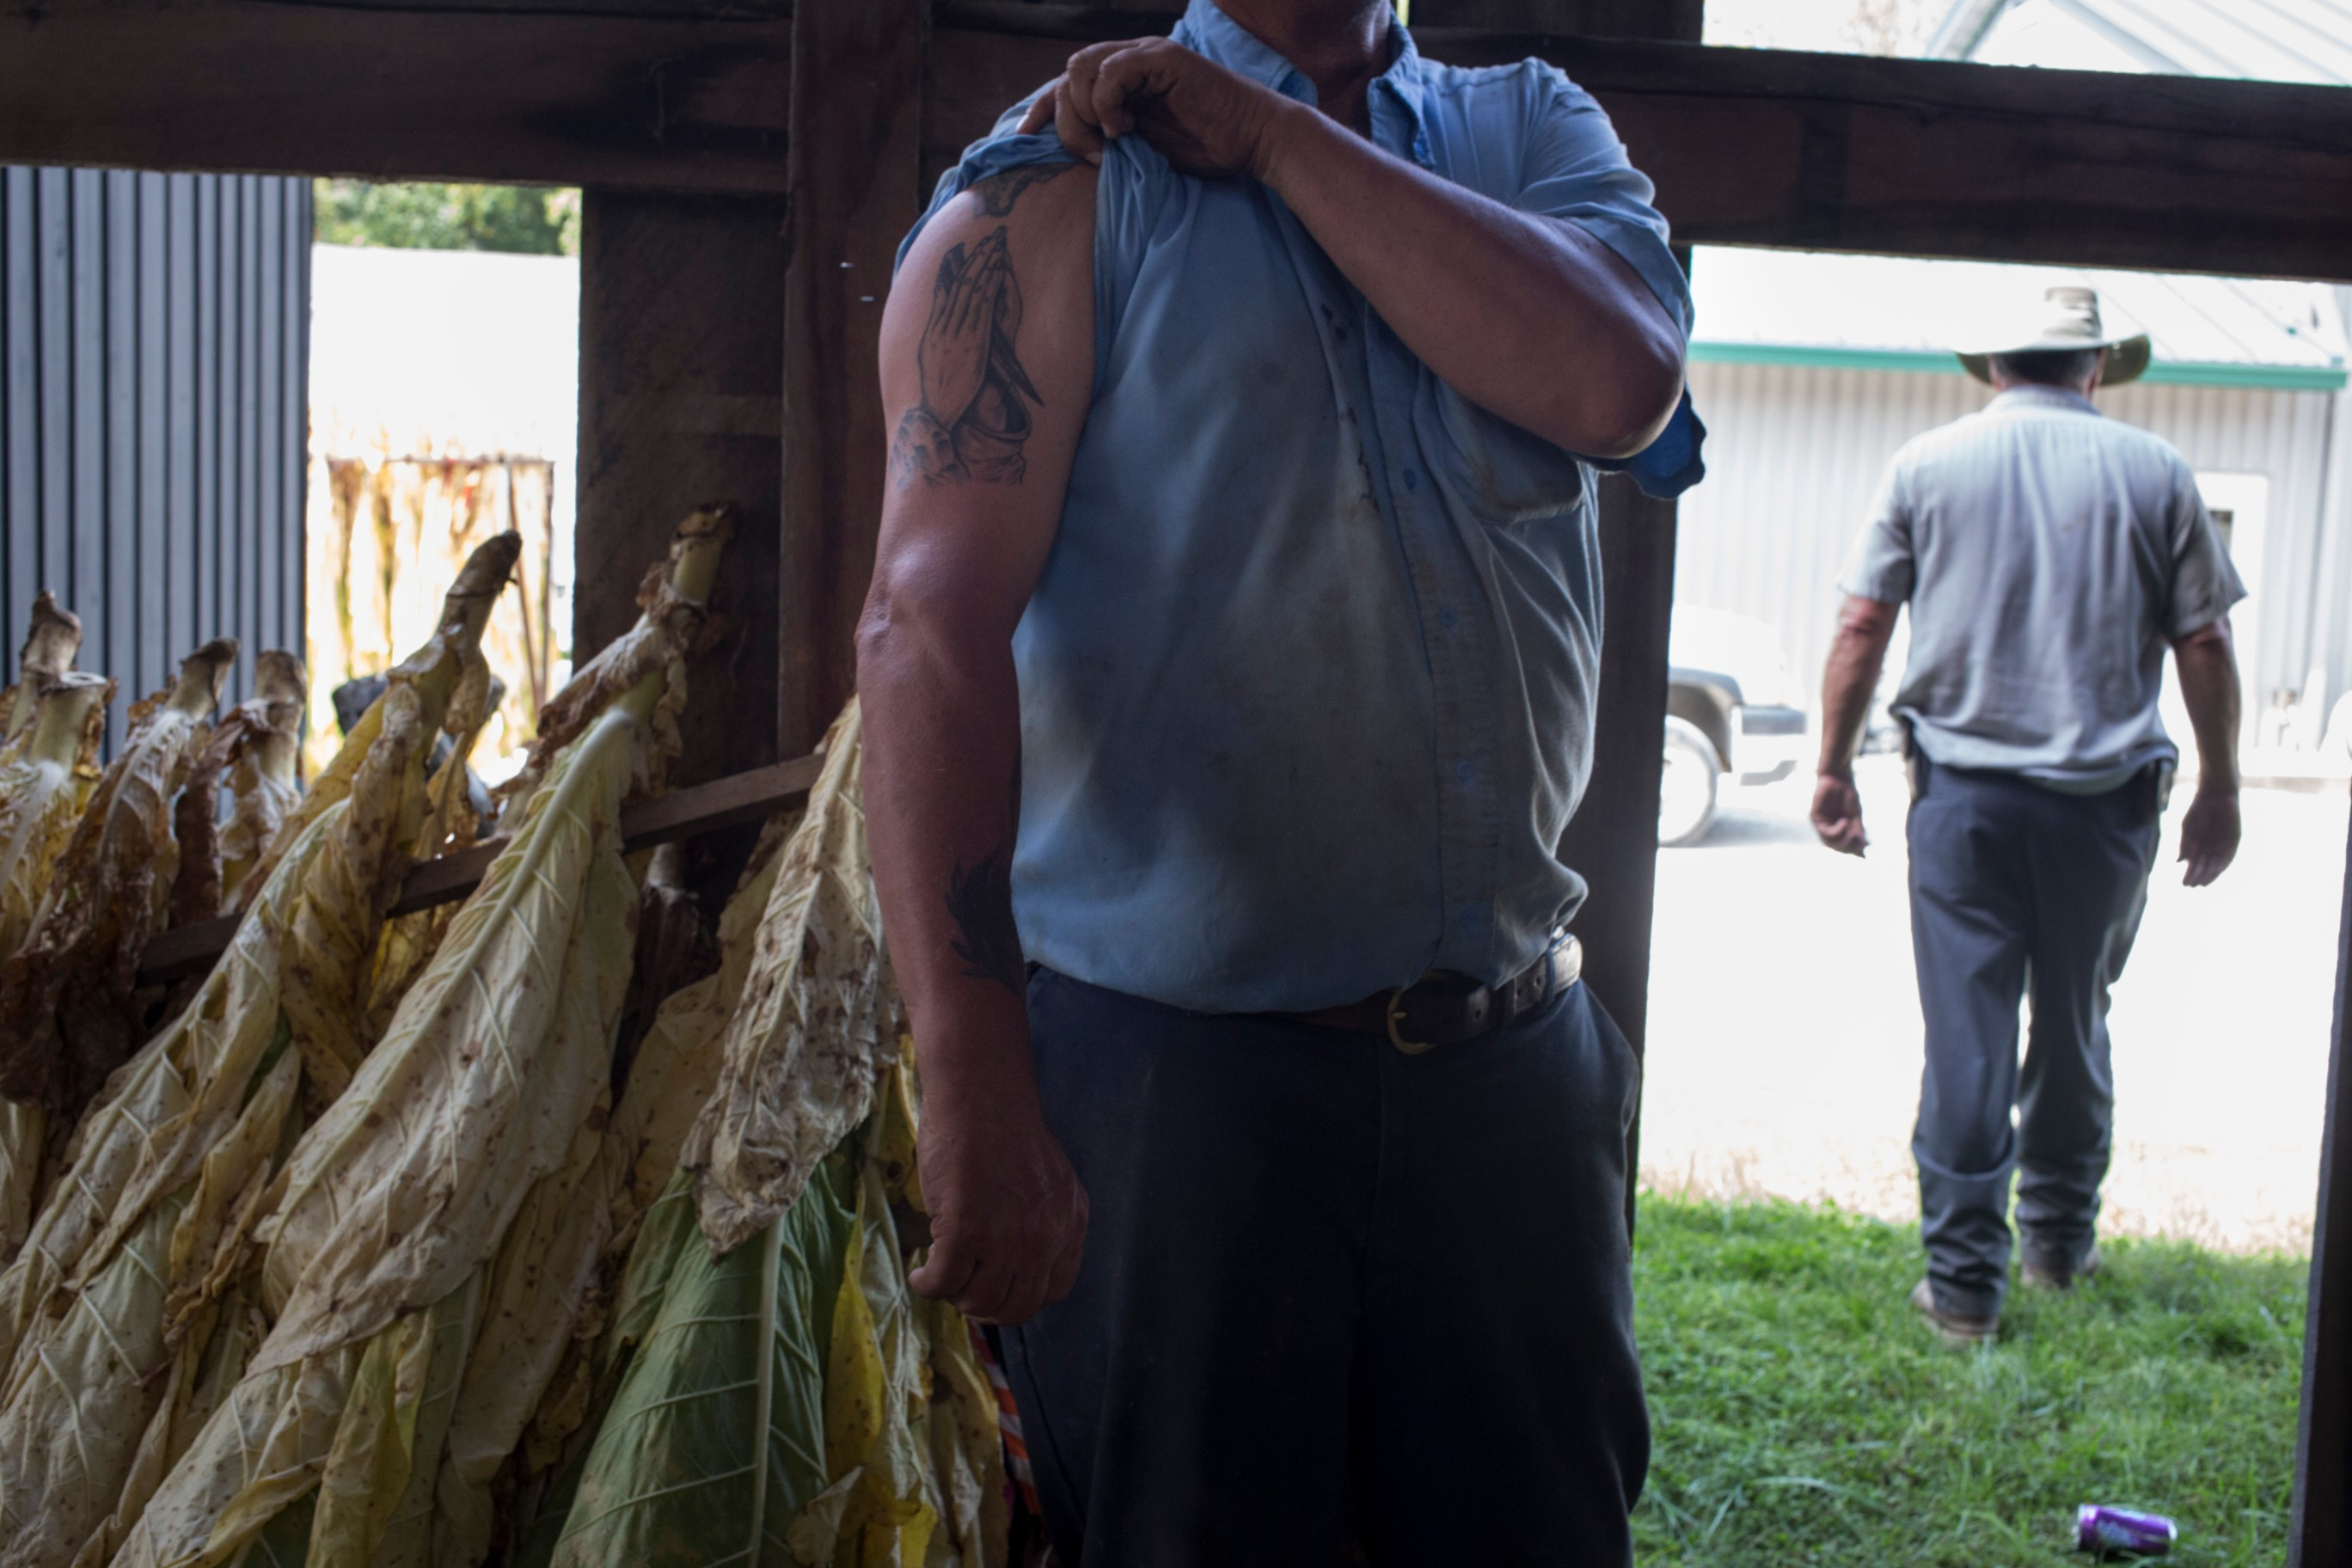 Clifford Green, 54, displays a religious tattoo while working with tobacco at the Robinson Center for Appalachian Resource Sustainability in Quicksand, Ky., on Monday, September 27, 2017. (Photo by Brittany Greeson/GroundTruth)